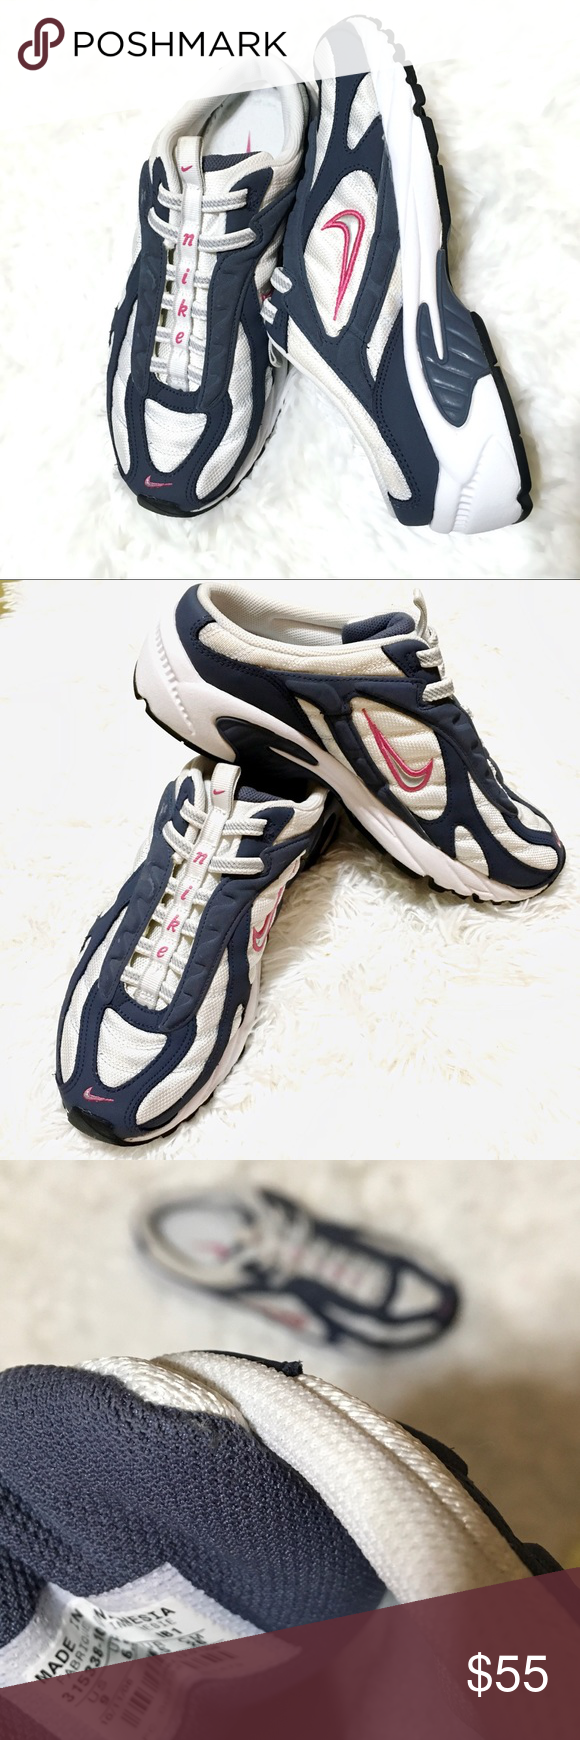 Nike Backless Sneakers/Mules Size